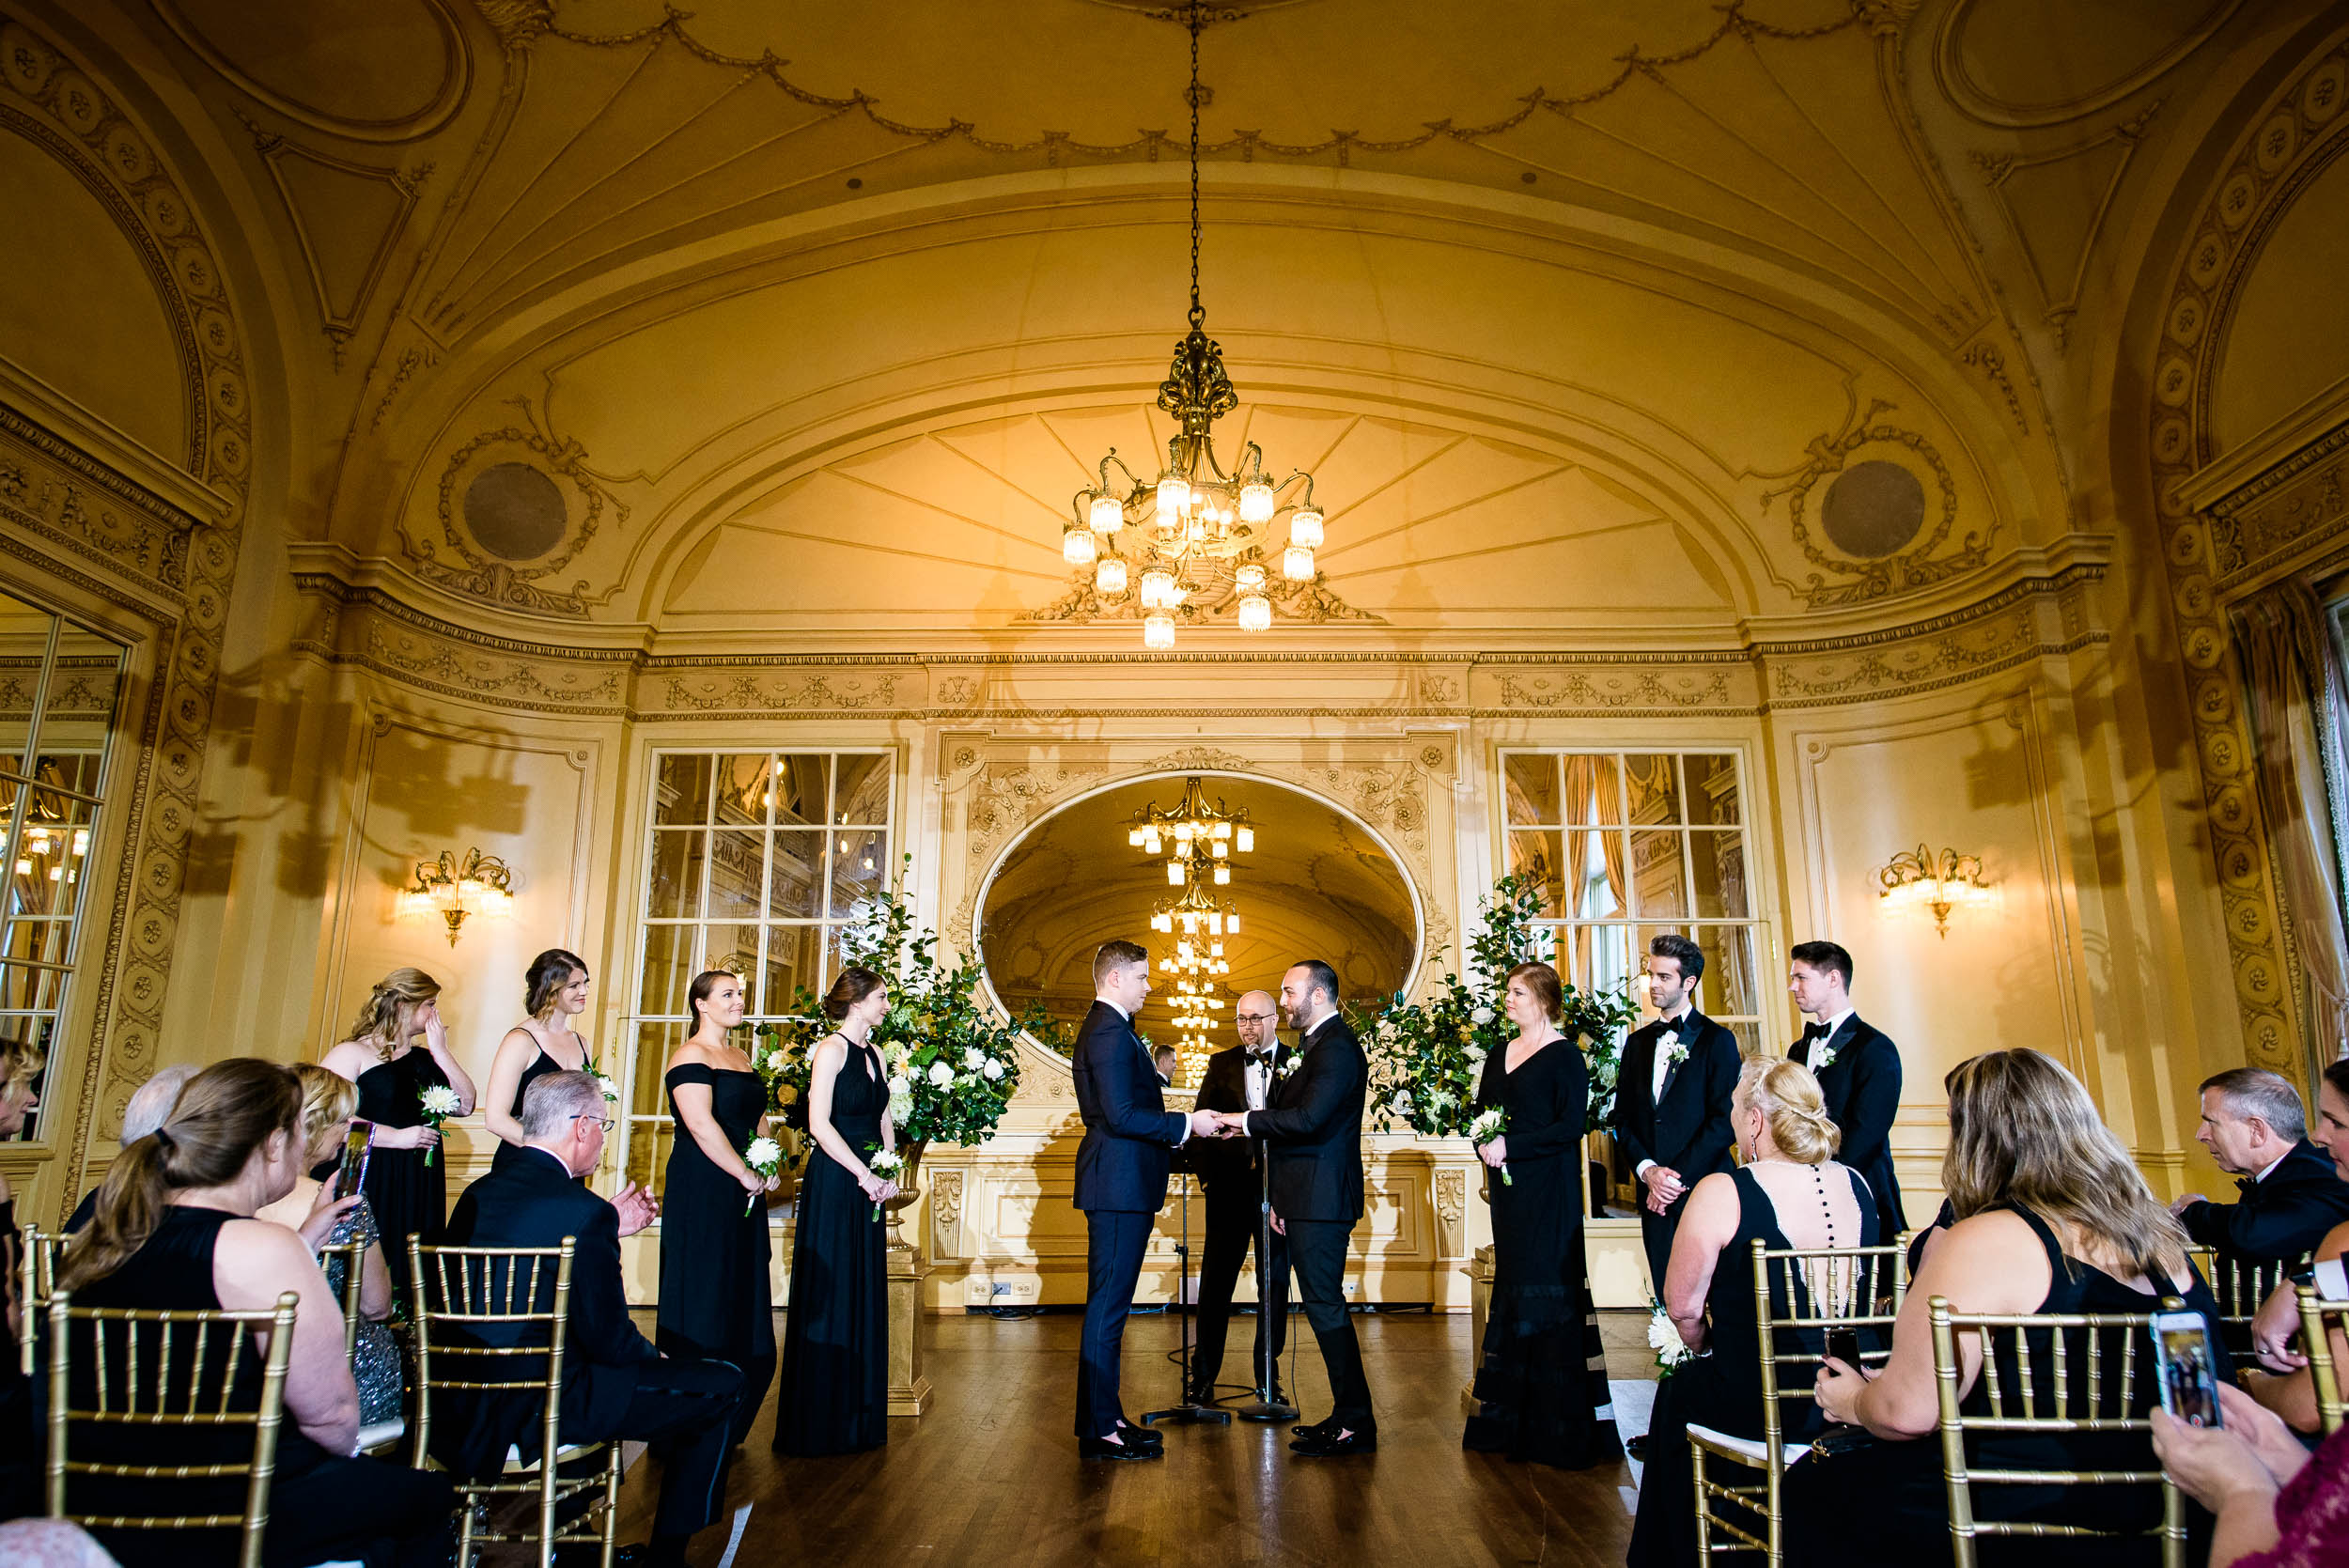 Grooms exchange their vows for luxurious fall wedding at the Chicago Symphony Center captured by J. Brown Photography. See more wedding ideas at jbrownphotography.com!